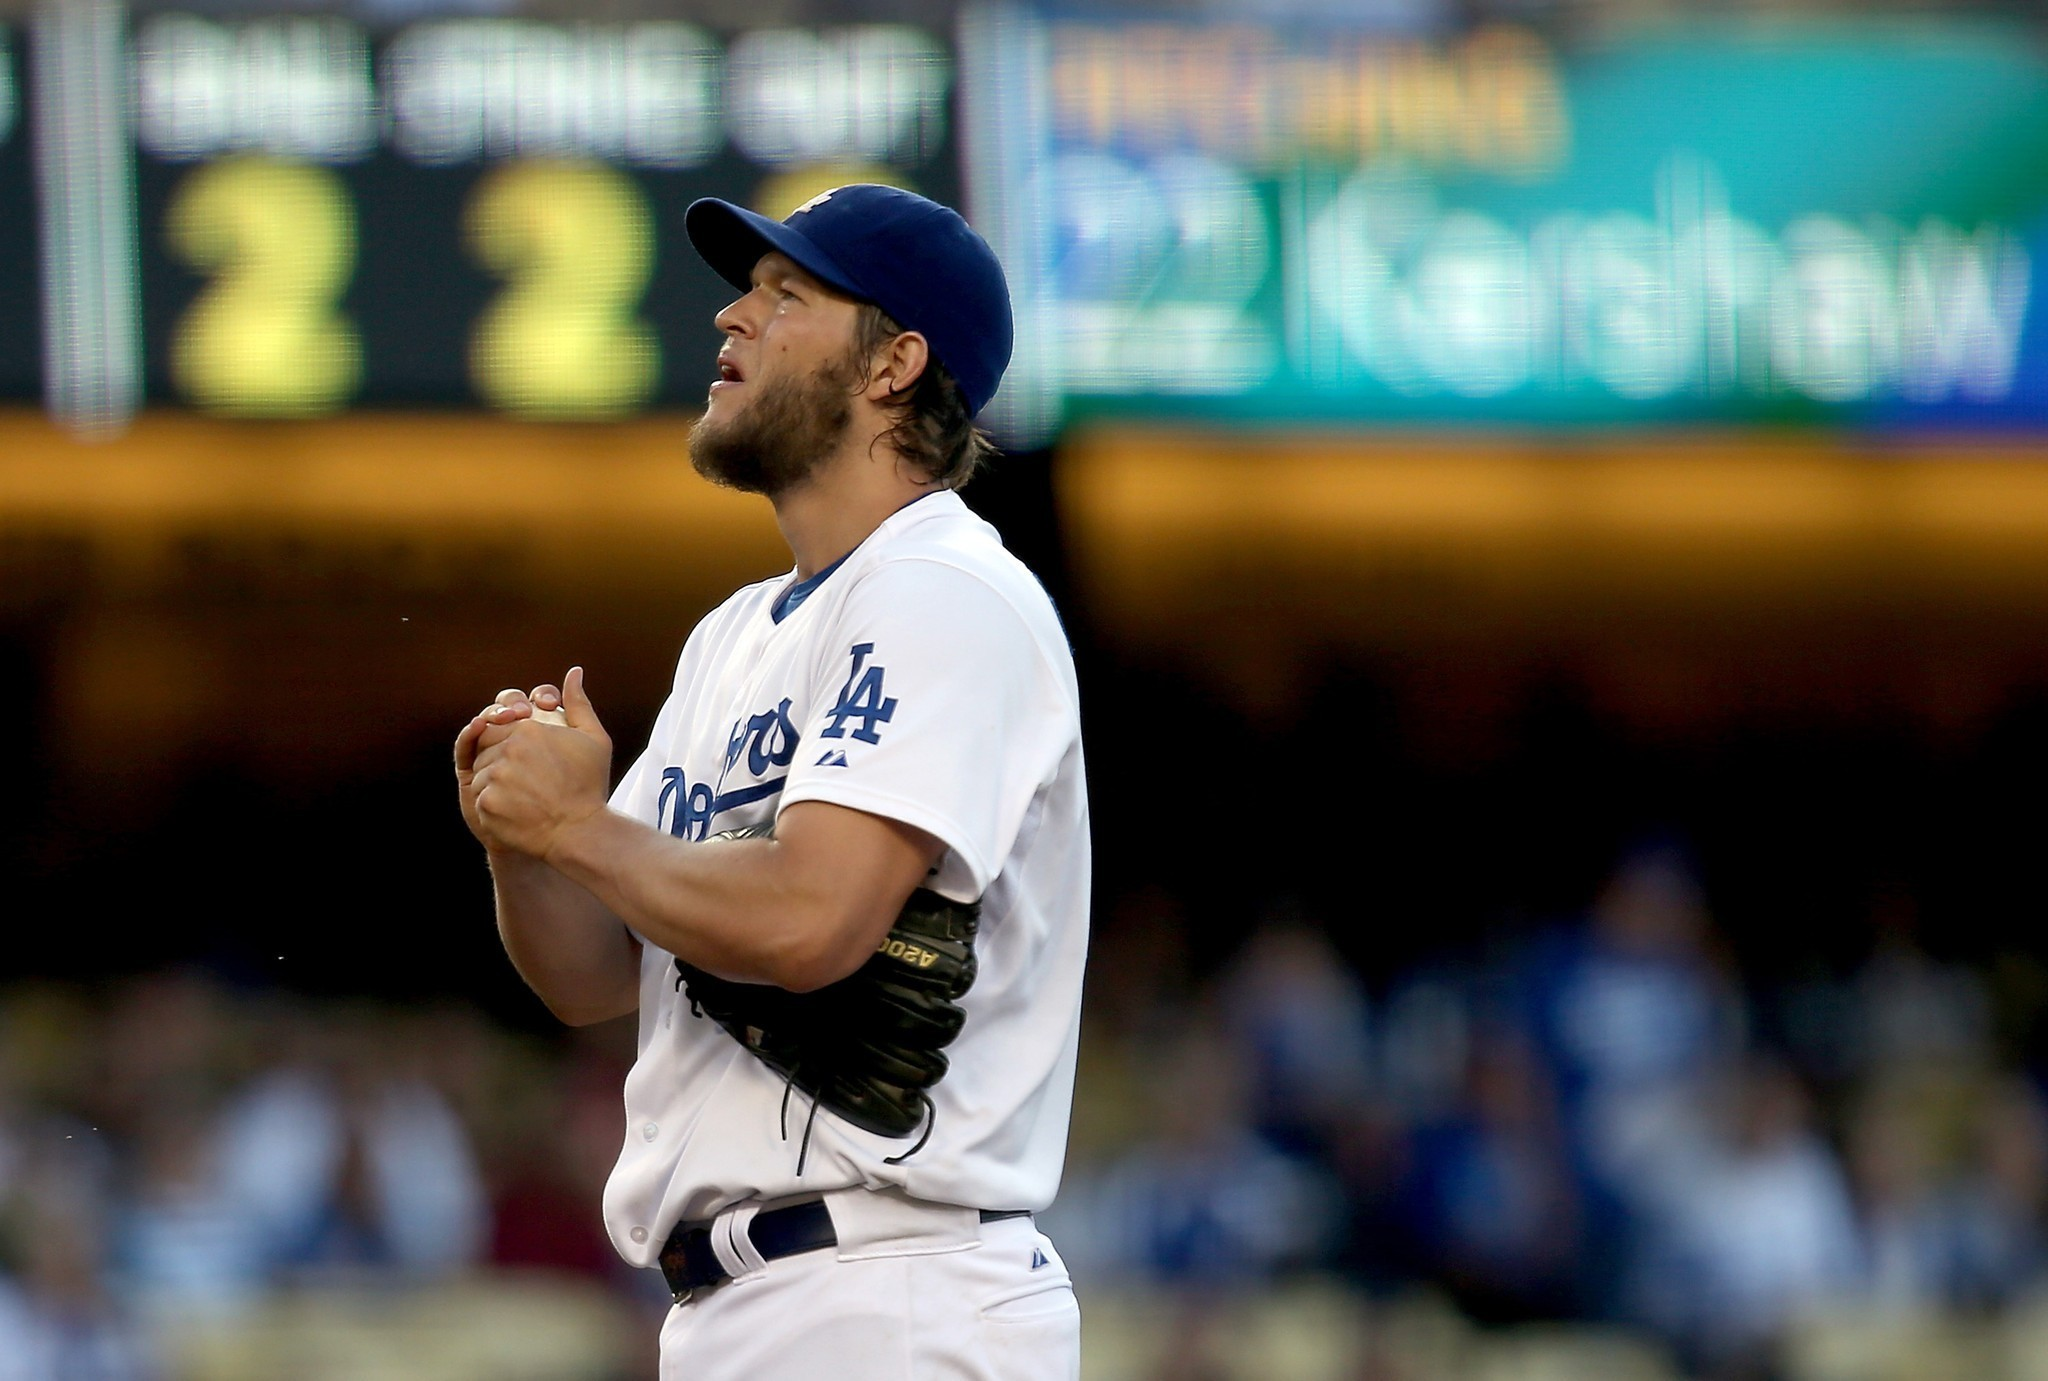 Dodgers win, Kershaw's streak ends and Crawford sits